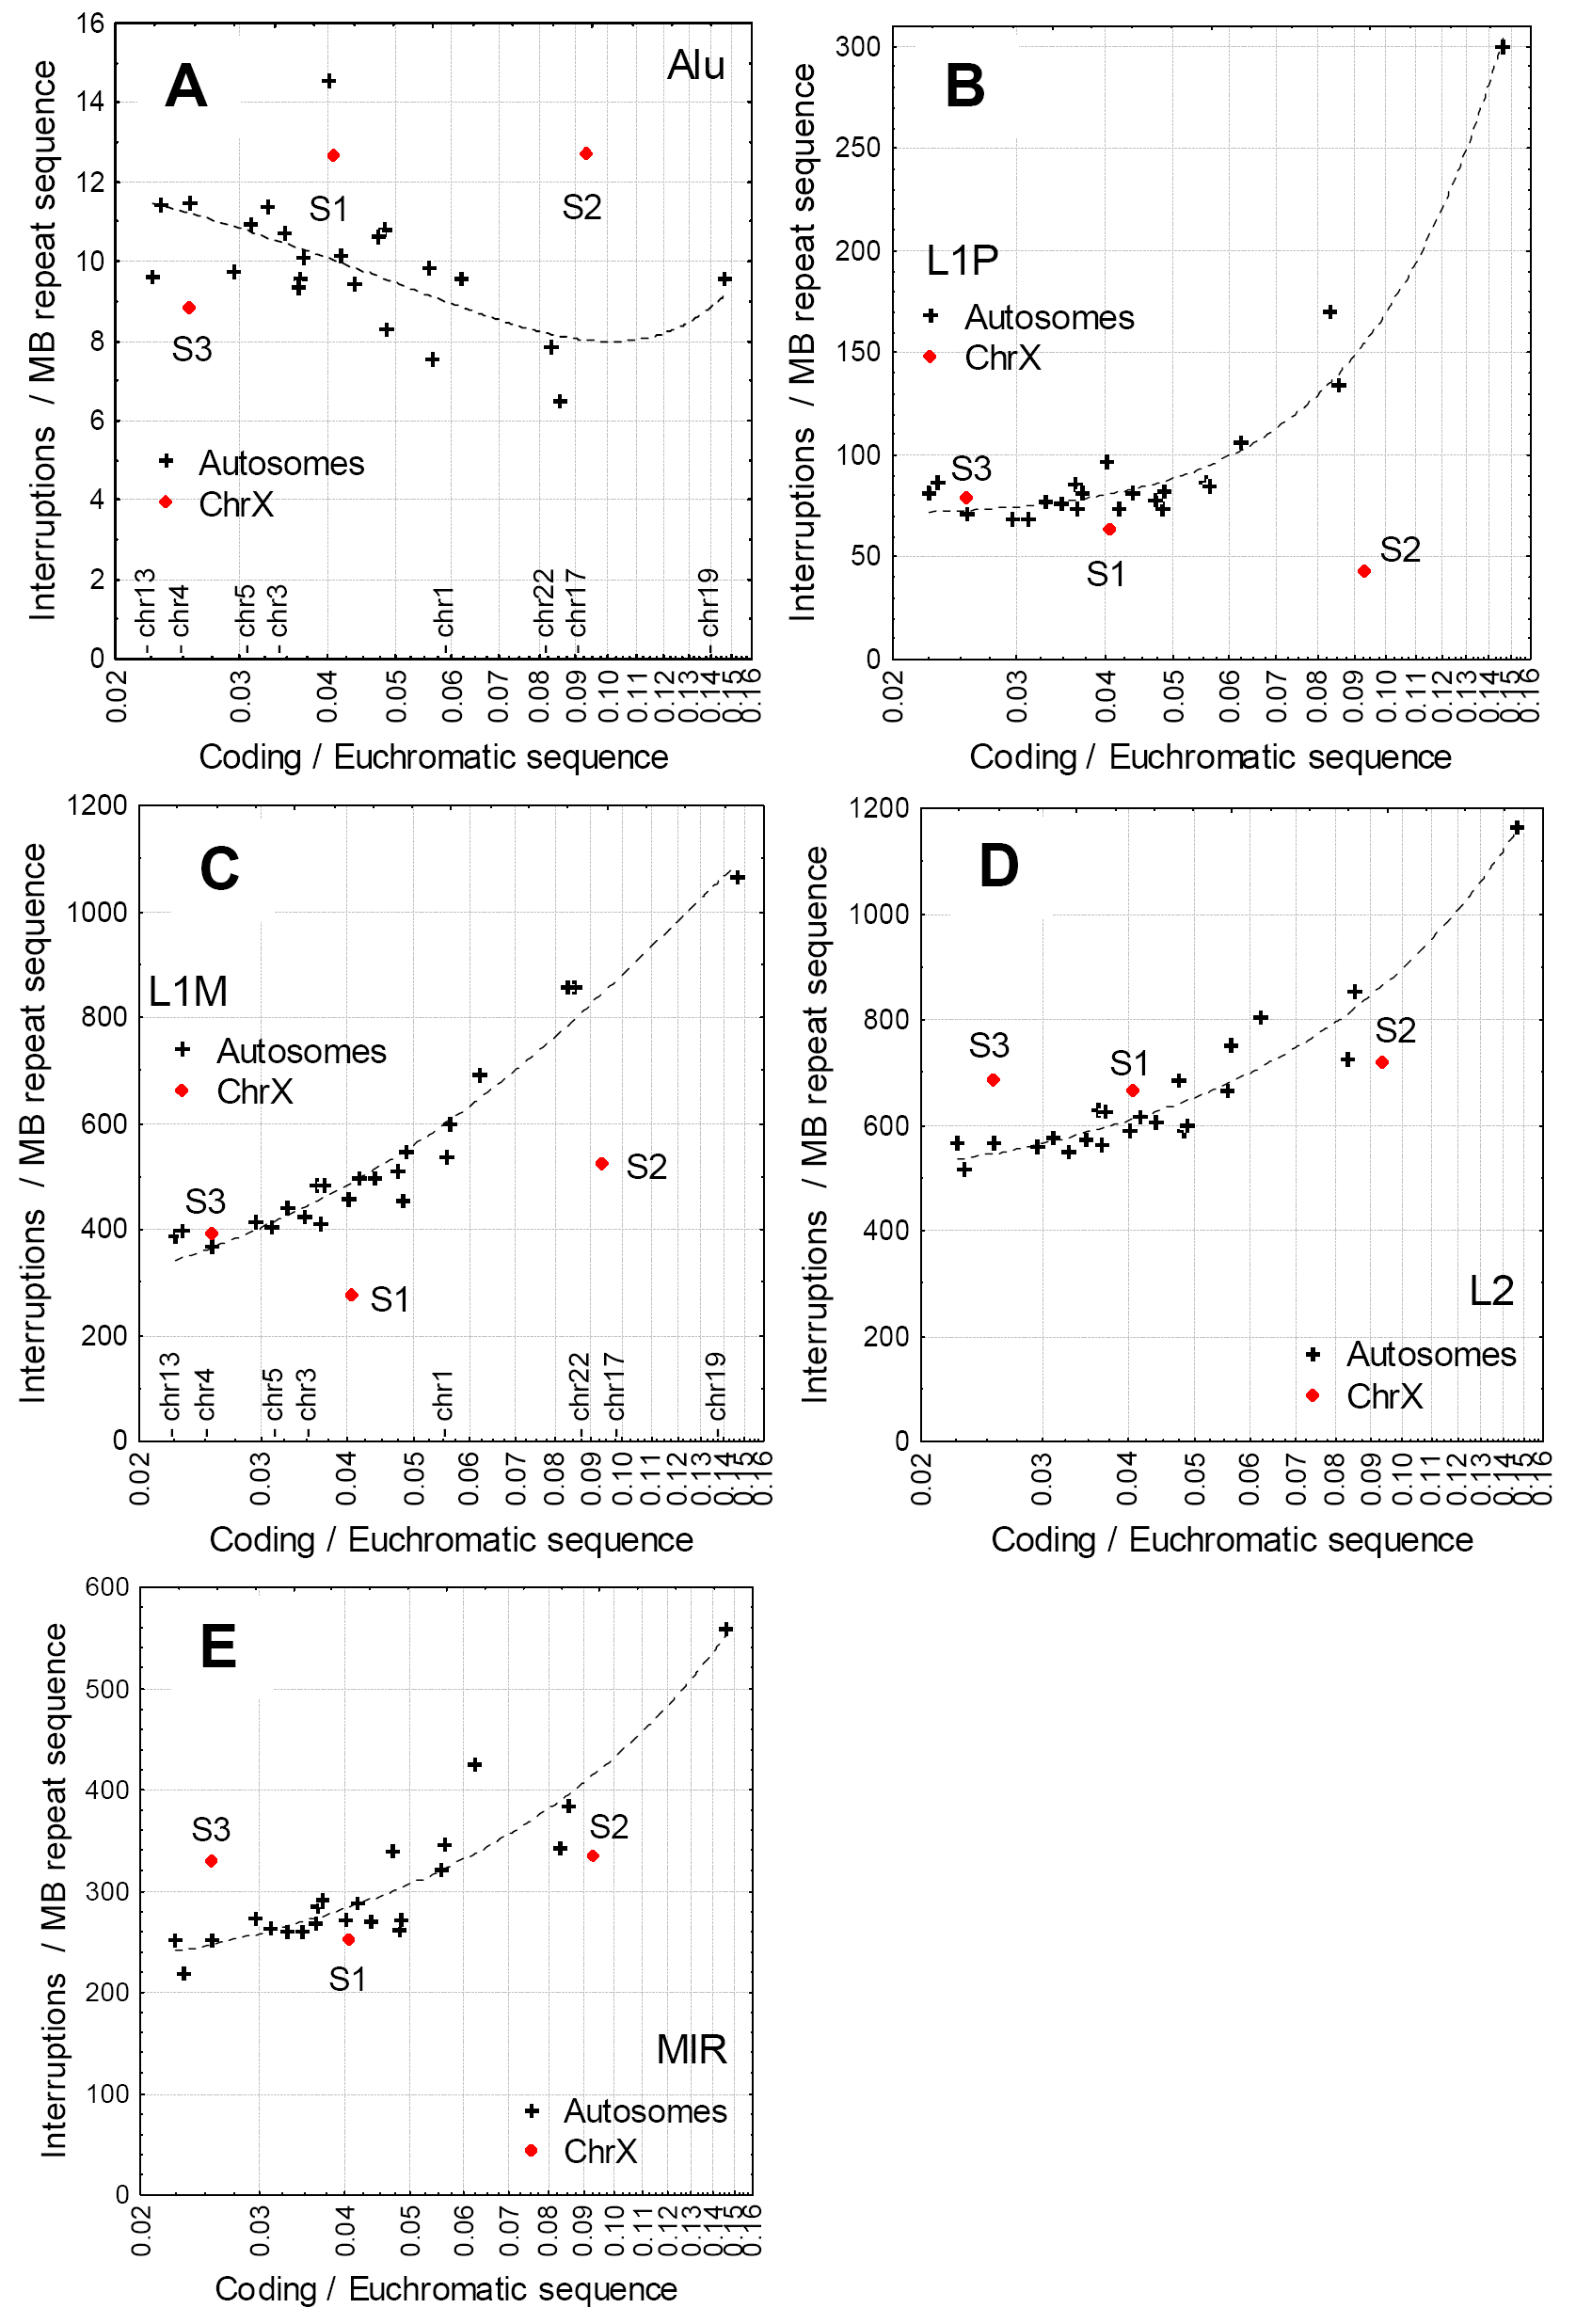 Correlations between the density of coding sequence in the euchromatic region of chromosomes (coding sequence/non-repetitive sequence), and the frequency of interruptions of the main non-LTR repeats.